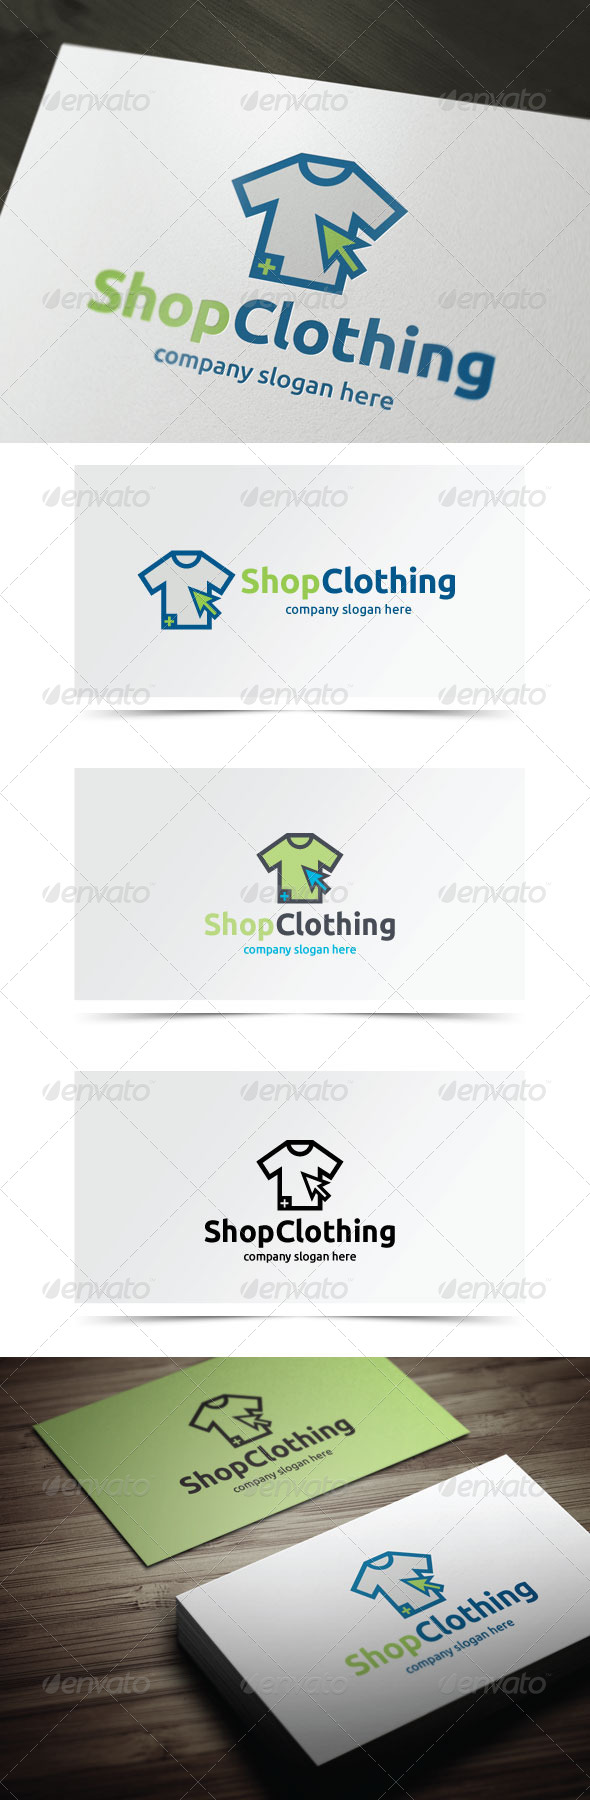 Shop Clothing - Symbols Logo Templates